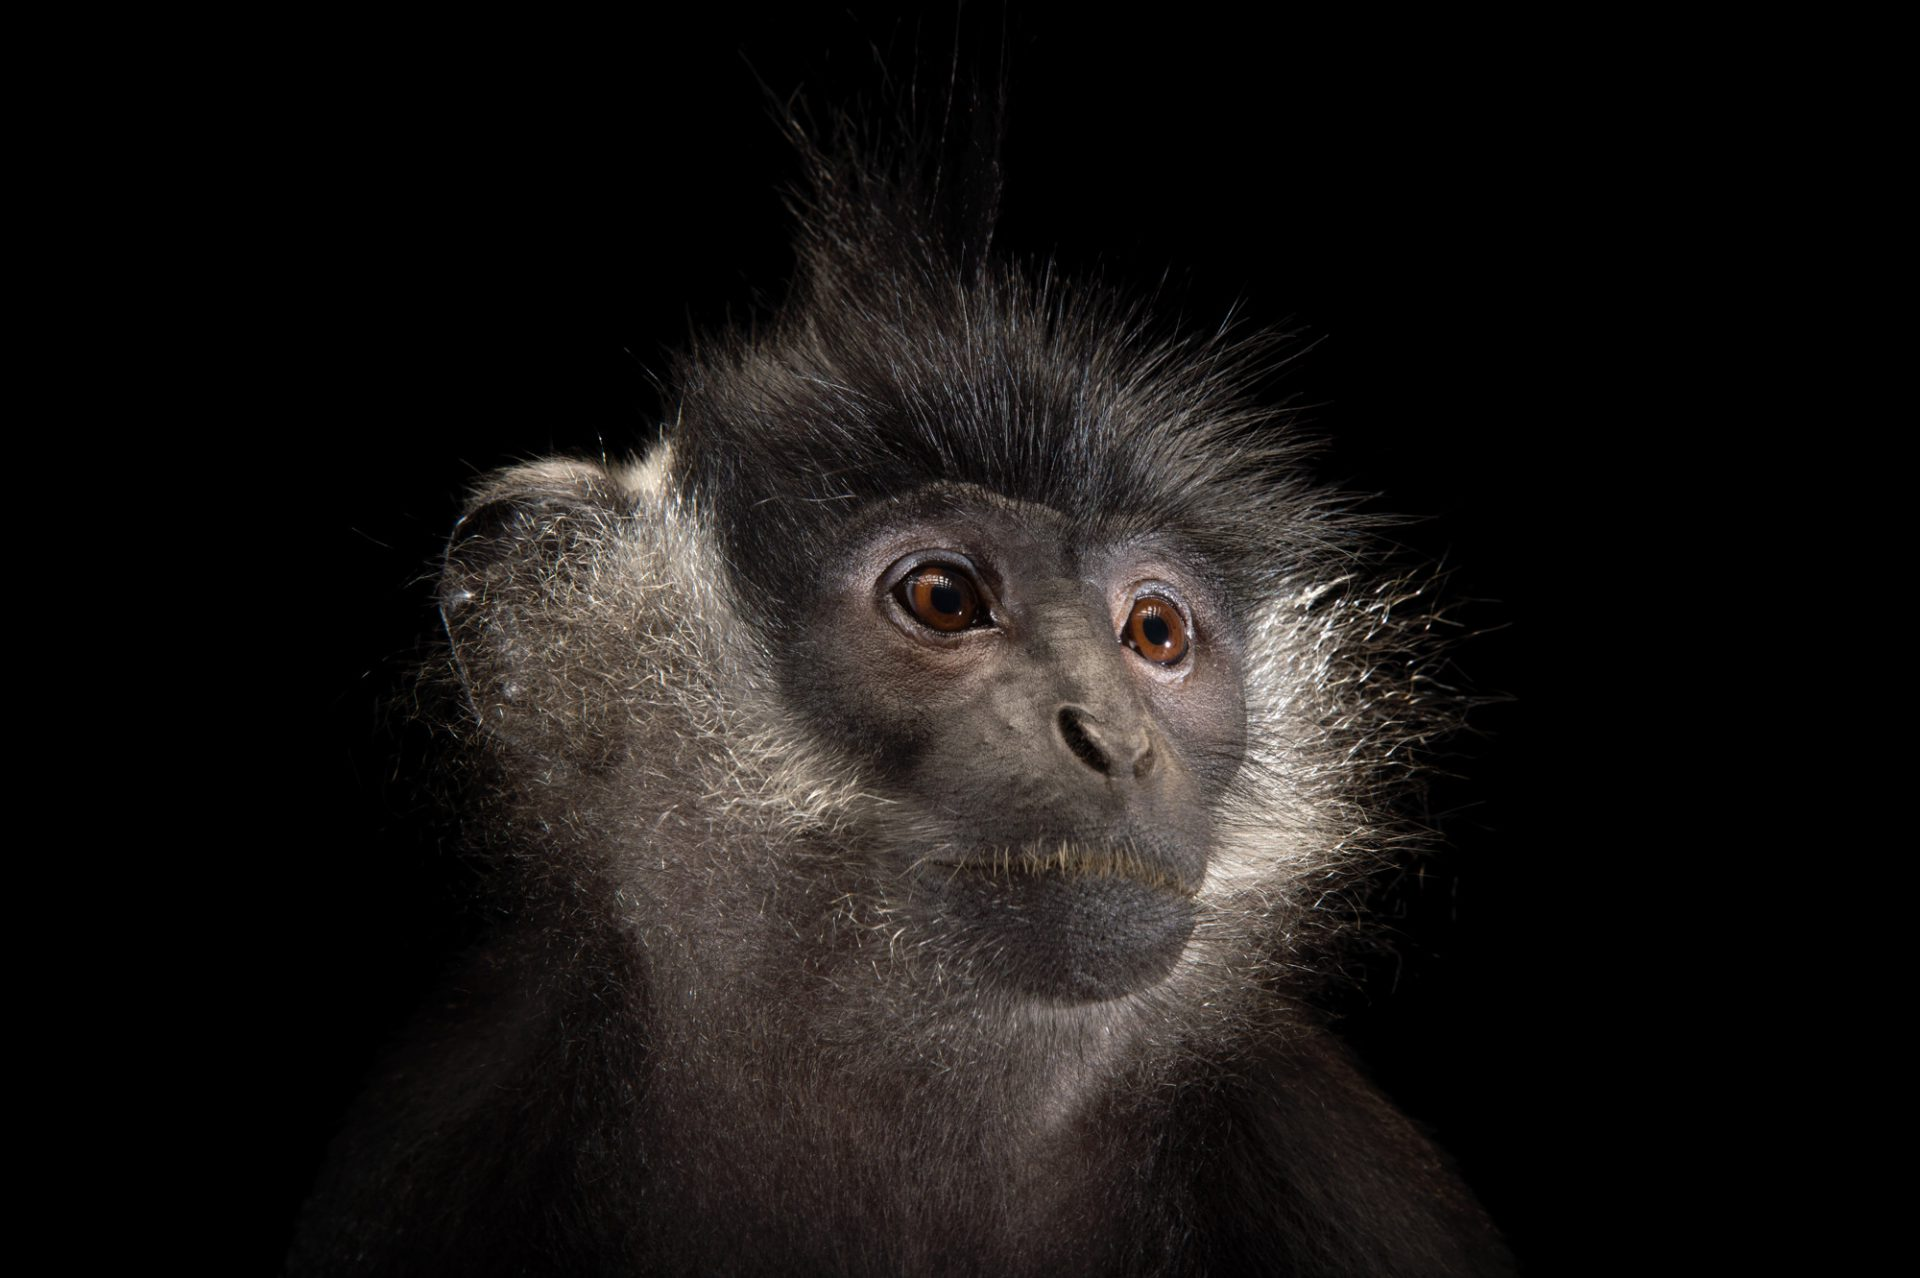 Picture of a critically endangered male Delacour's langur (Trachypithecus delacouri) at the Endangered Primate Rescue Center in Cuc Phuong National Park, Vietnam.